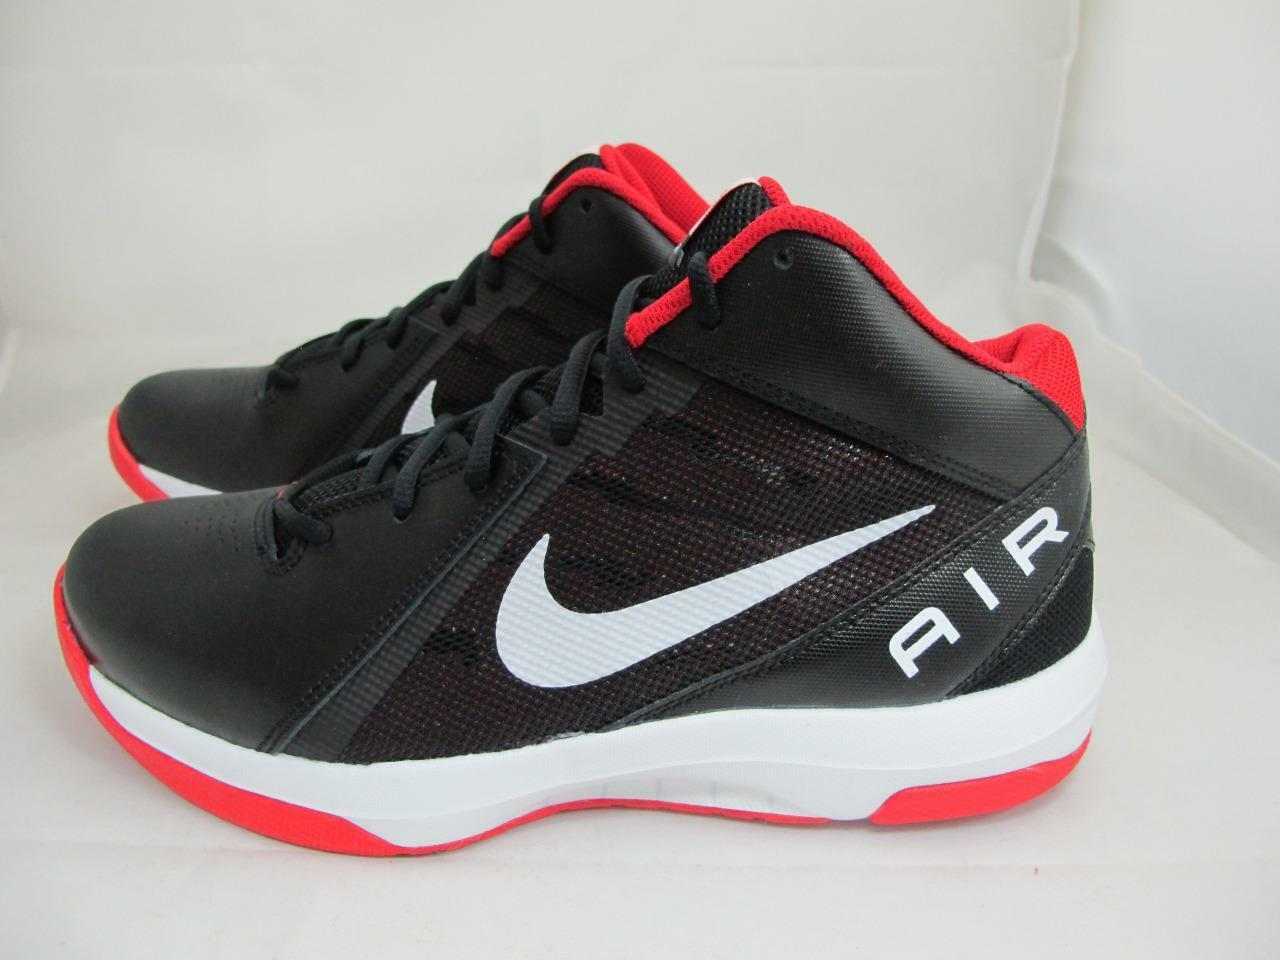 NEW MEN'S NIKE THE AIR OVER PLAY IX 831572-004 Cheap women's shoes women's shoes